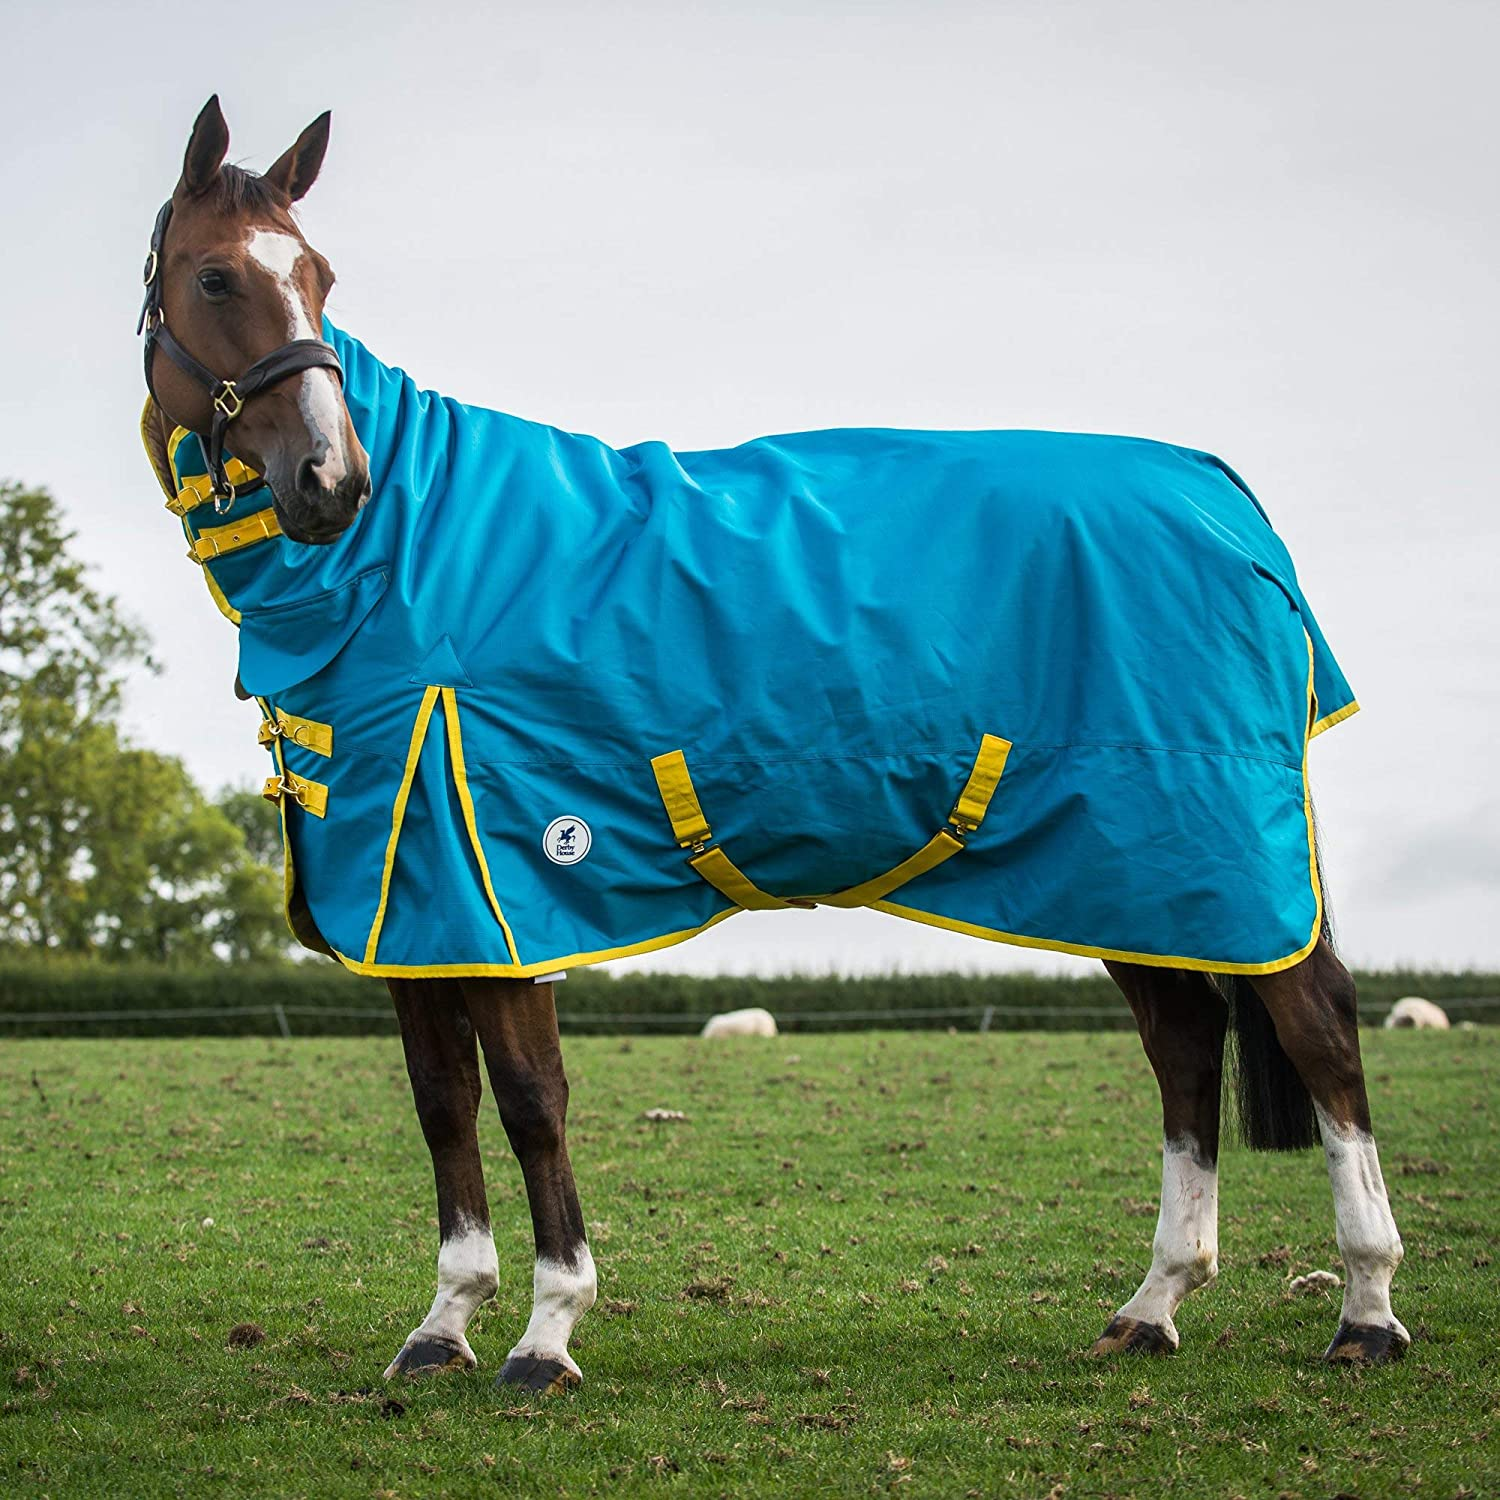 bluee Jewel Freesia 6ft3 bluee Jewel Freesia 6ft3 Derby House Pro Lightweight Combo Turnout Rug